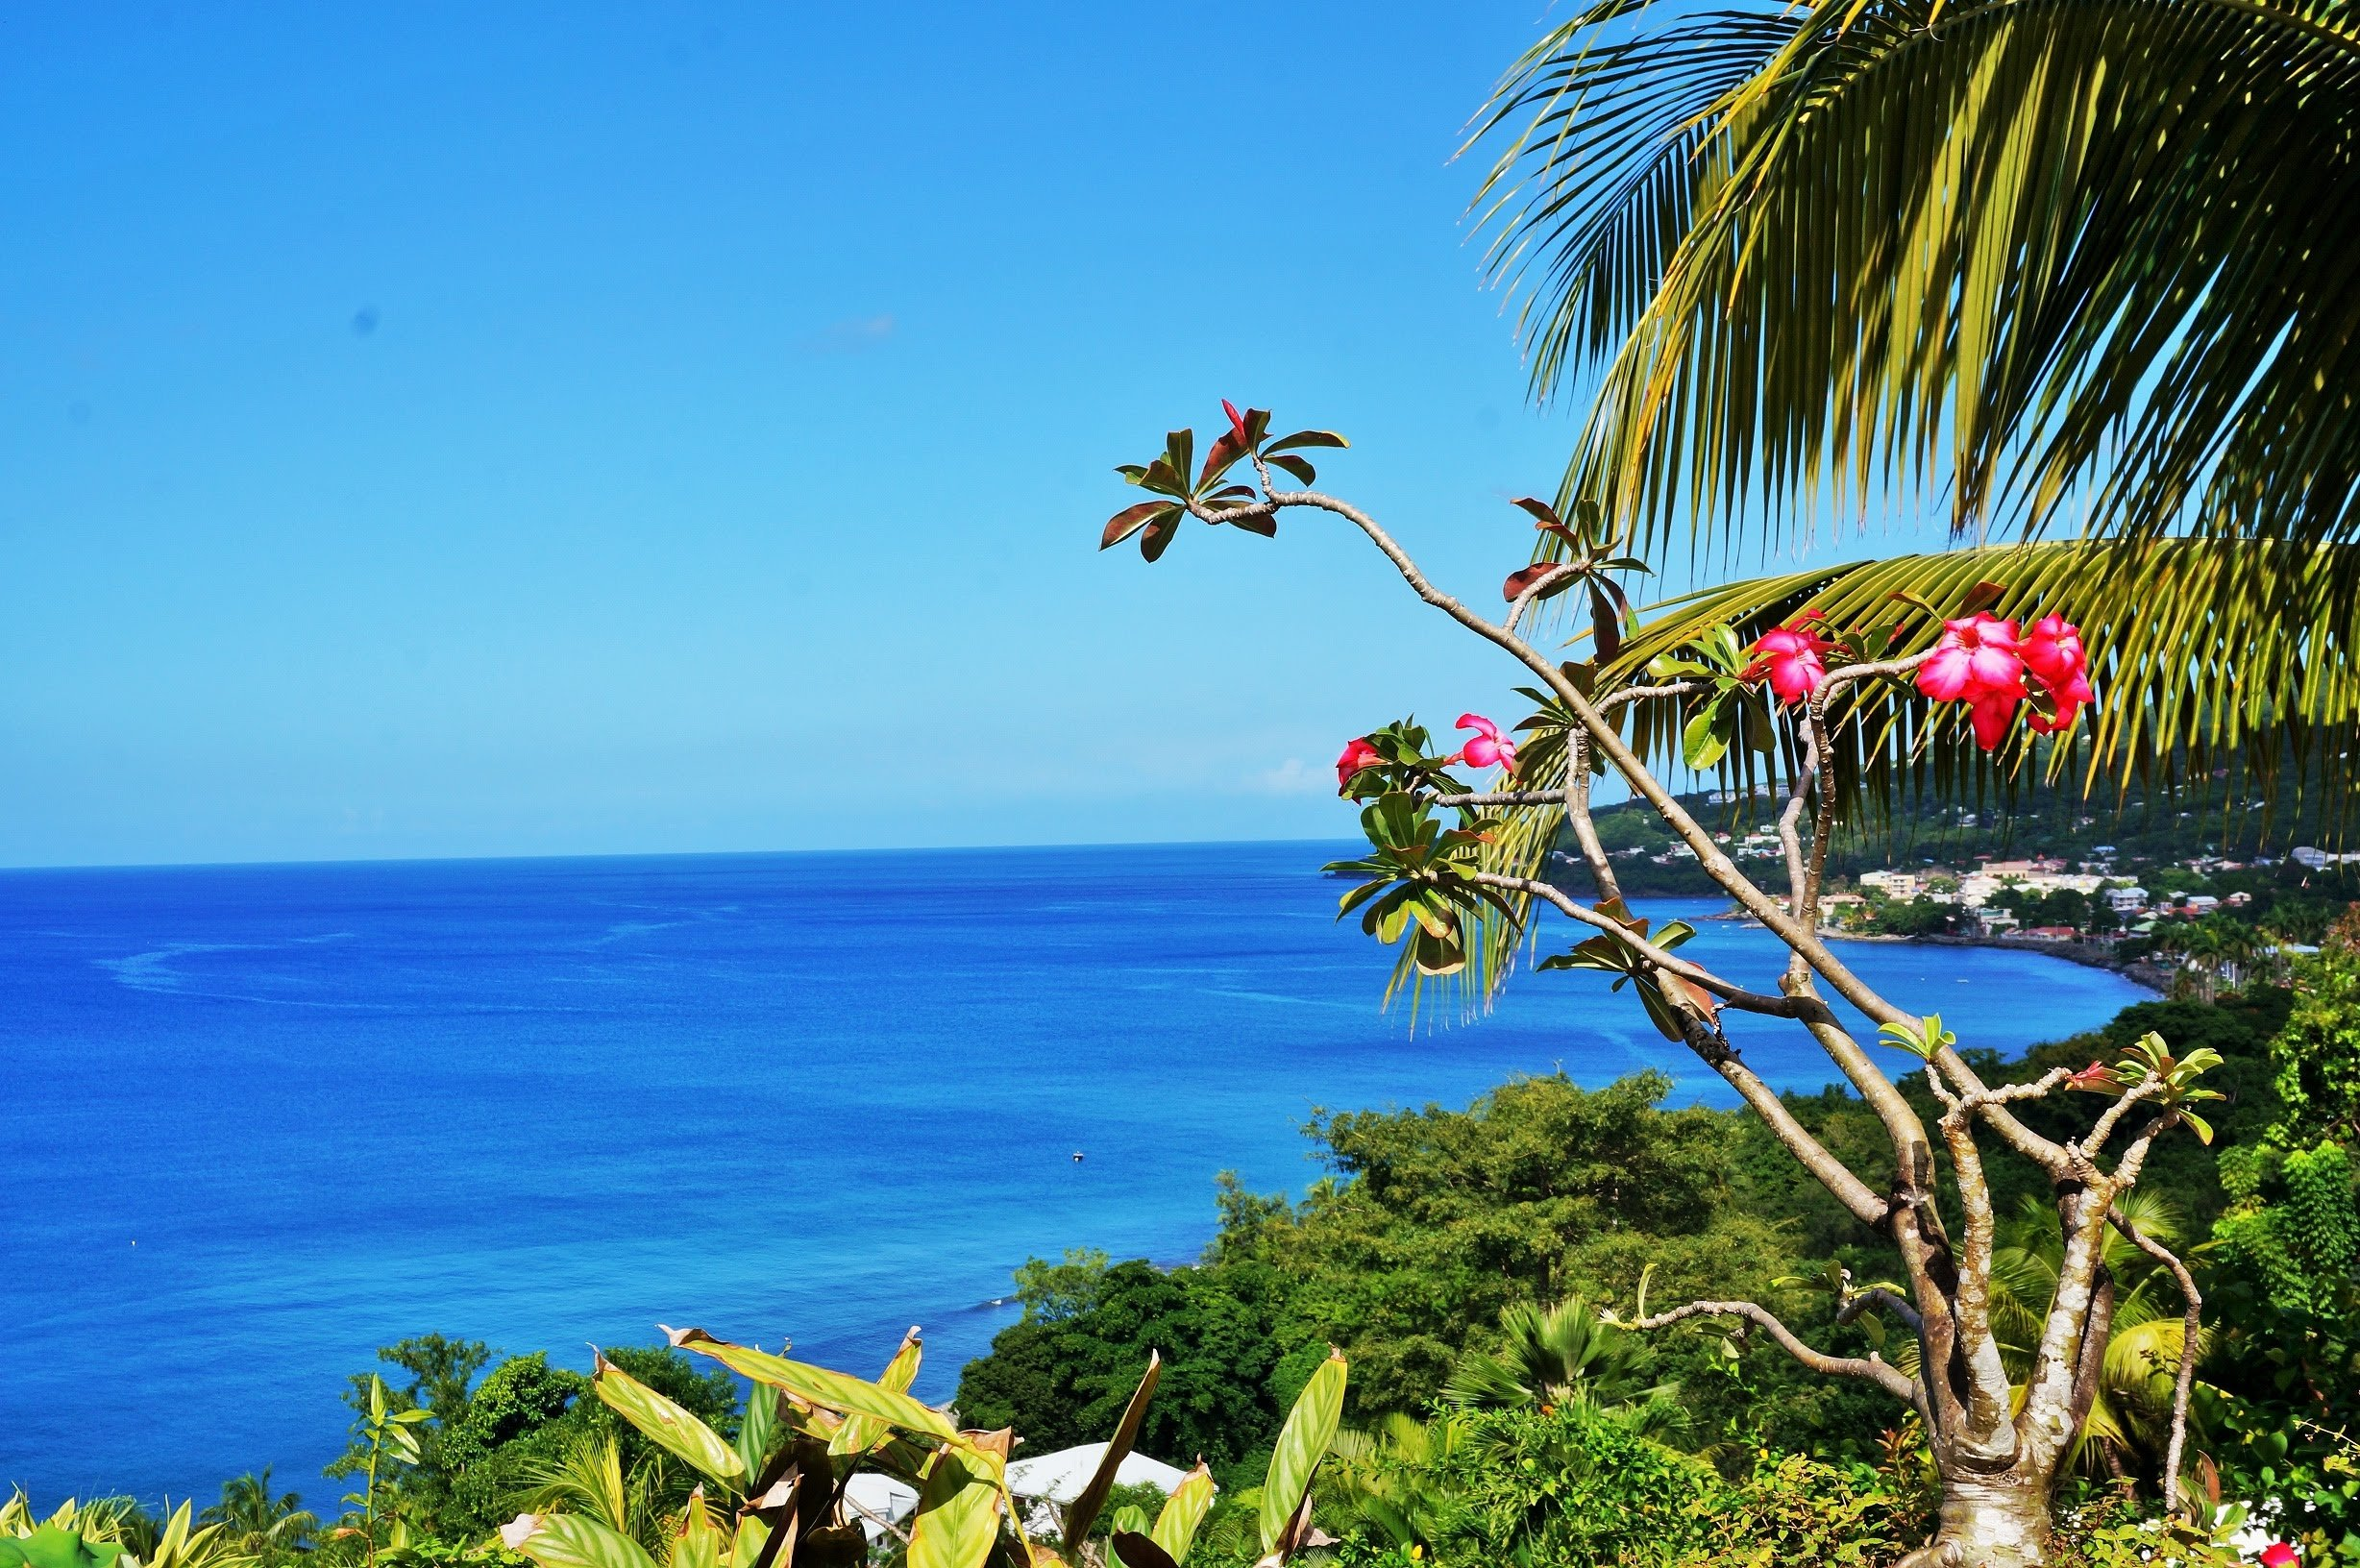 Coastal view seen at cycling camp in Guadeloupe